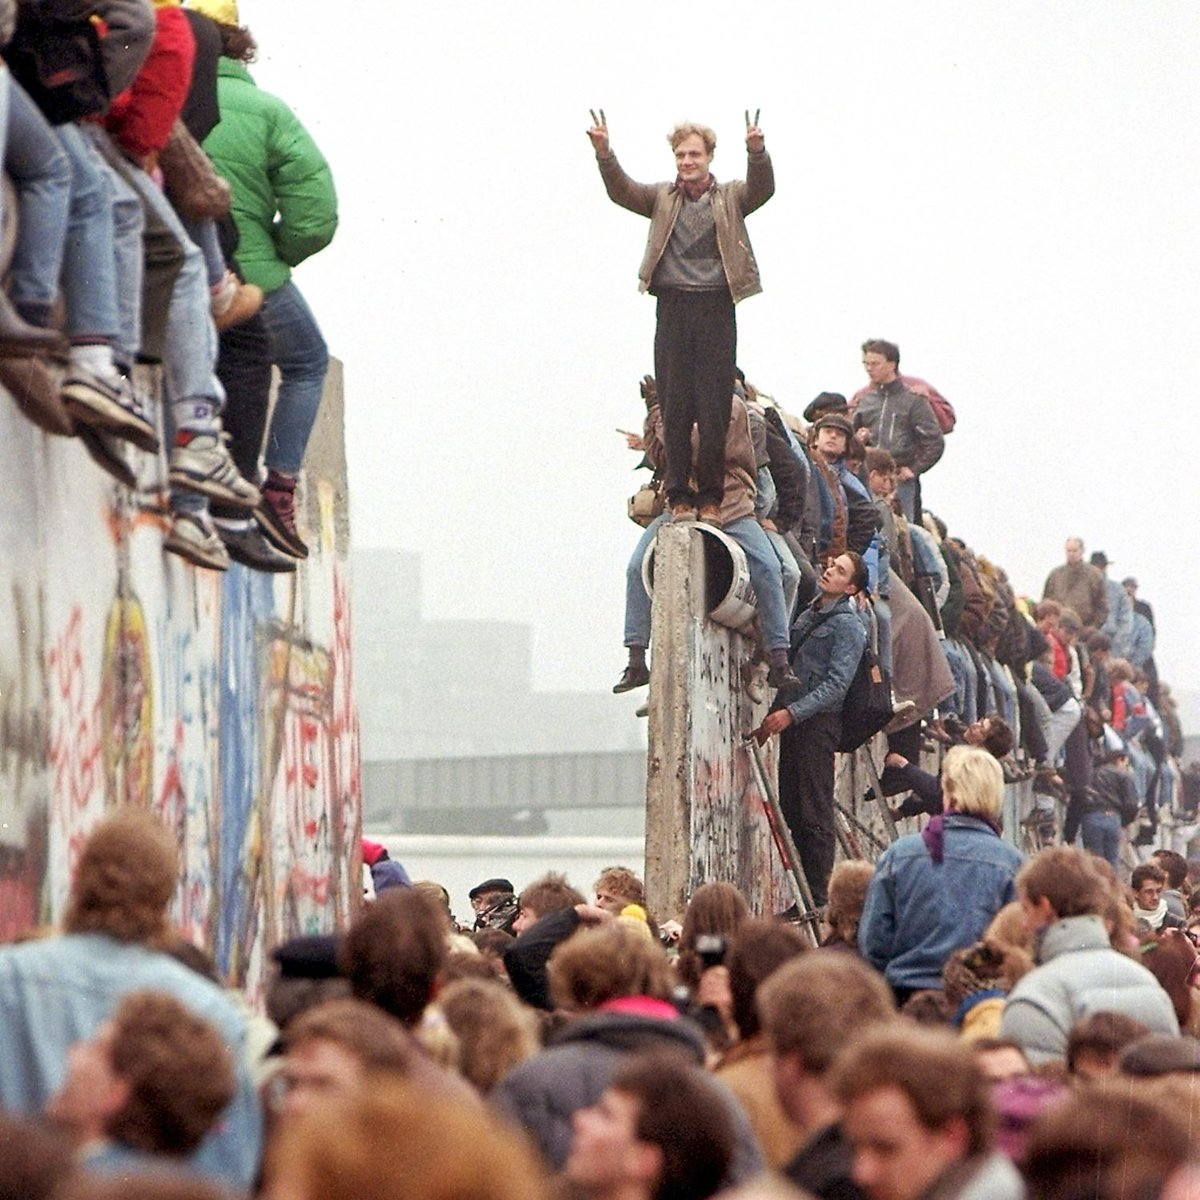 27 years ago today: the fall of the #BerlinWall. https://t.co/SbvRozVsoF